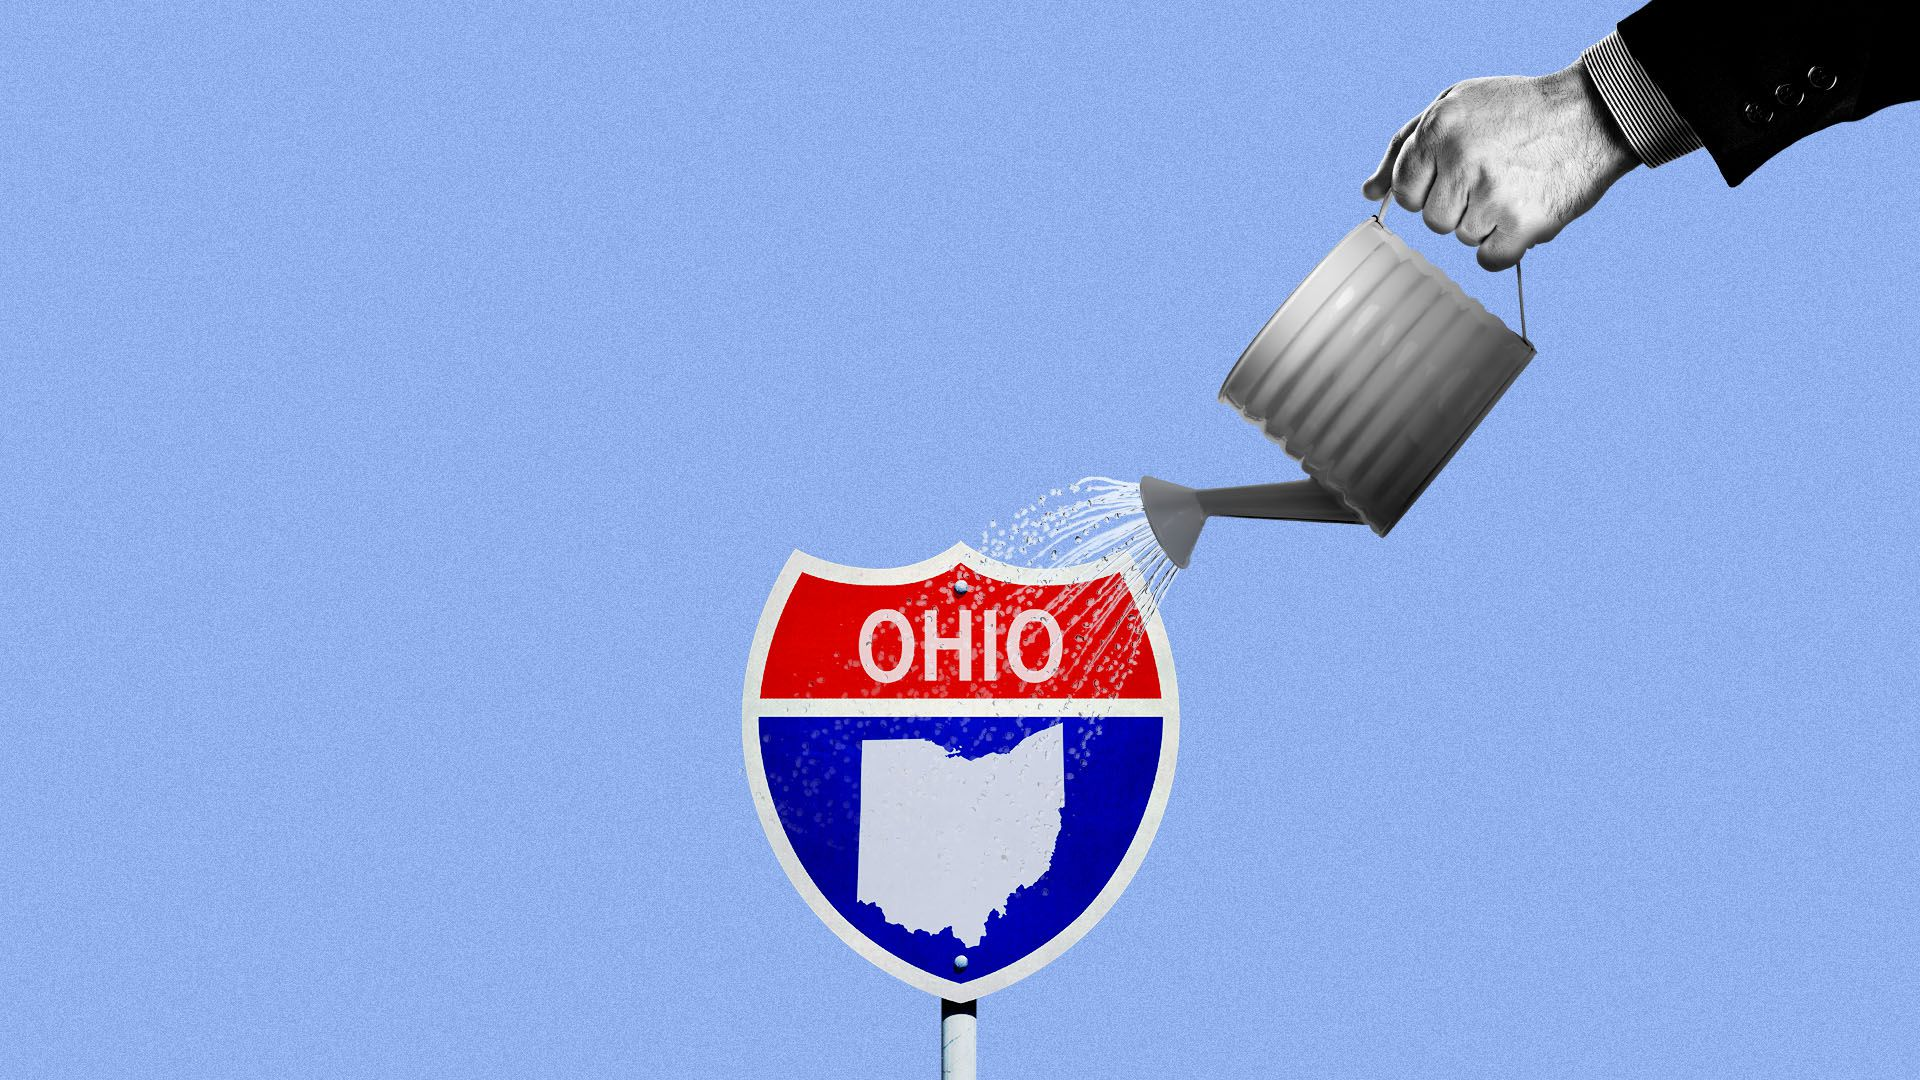 Illustration of an Ohio interstate sign being watered by a hand in a suit